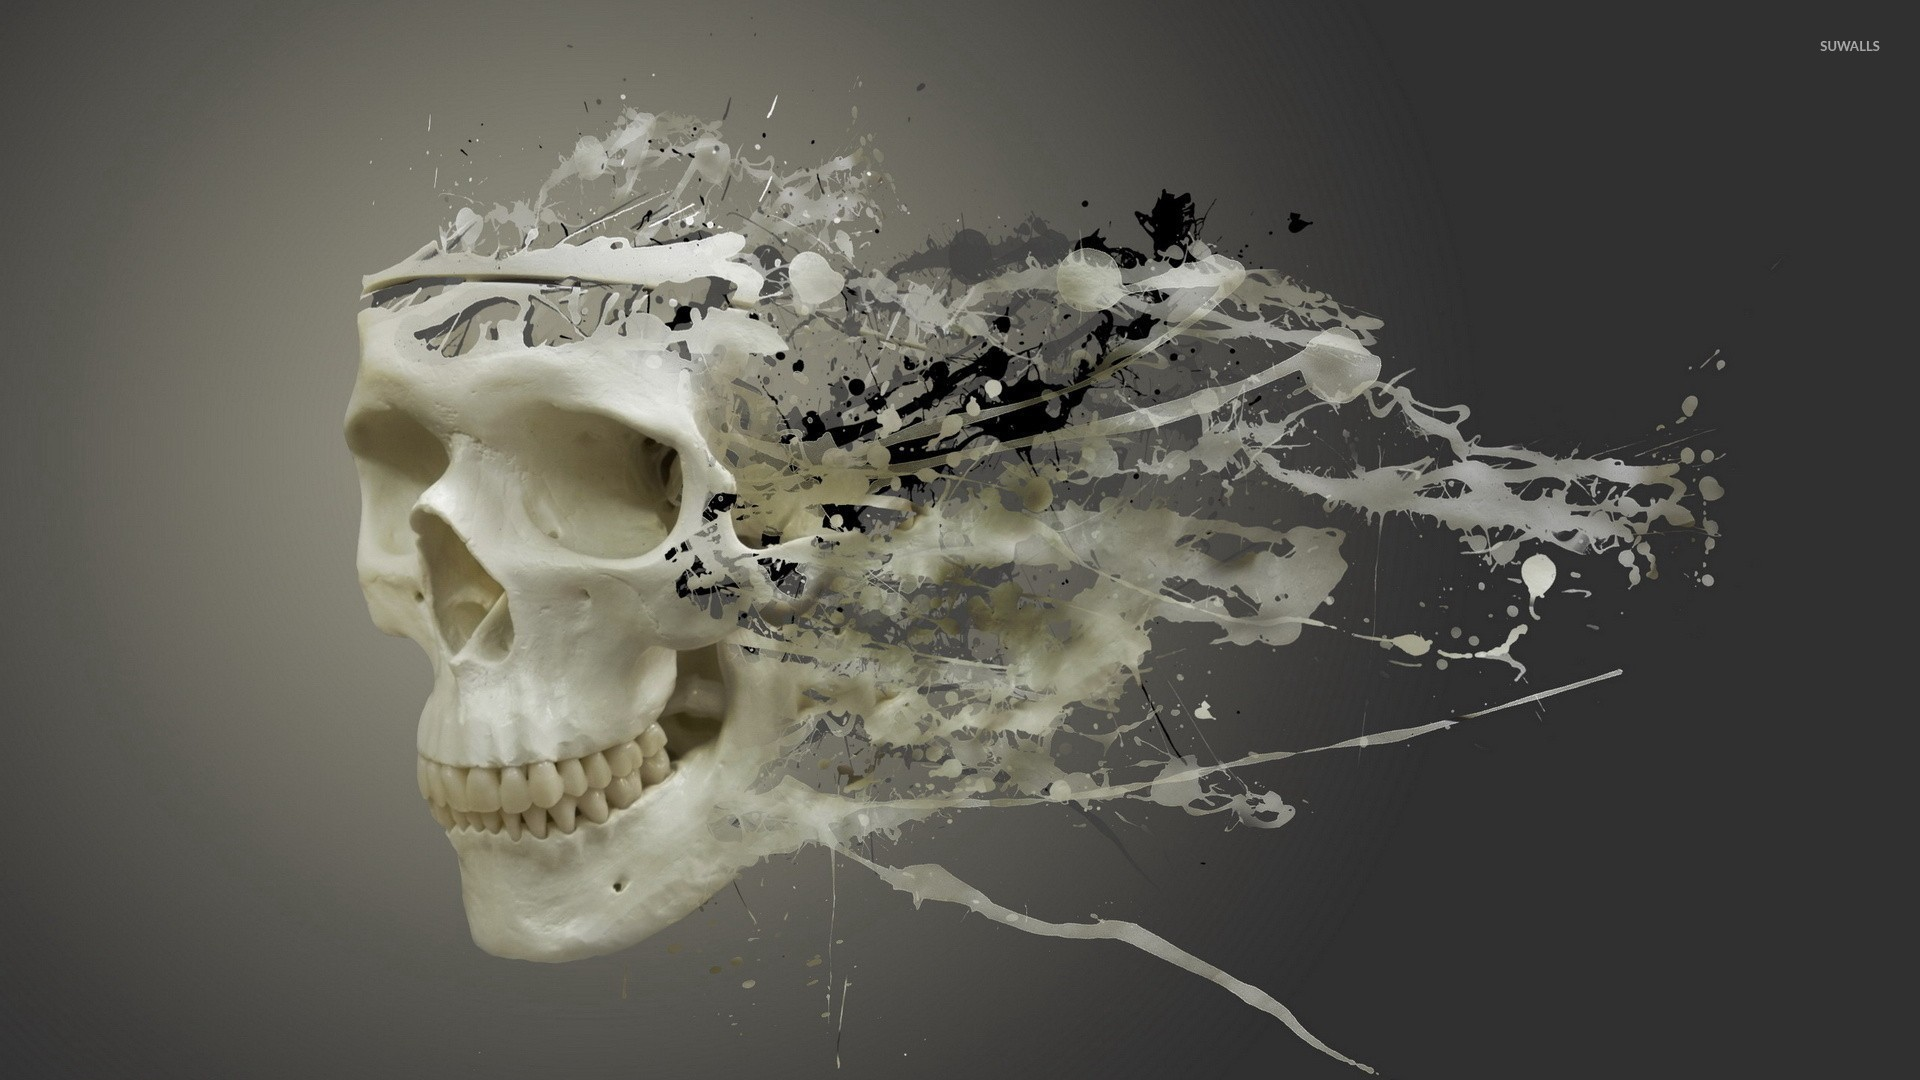 Res: 1920x1080, Free Hourglass Wallpaper Images at Cool » Monodomo